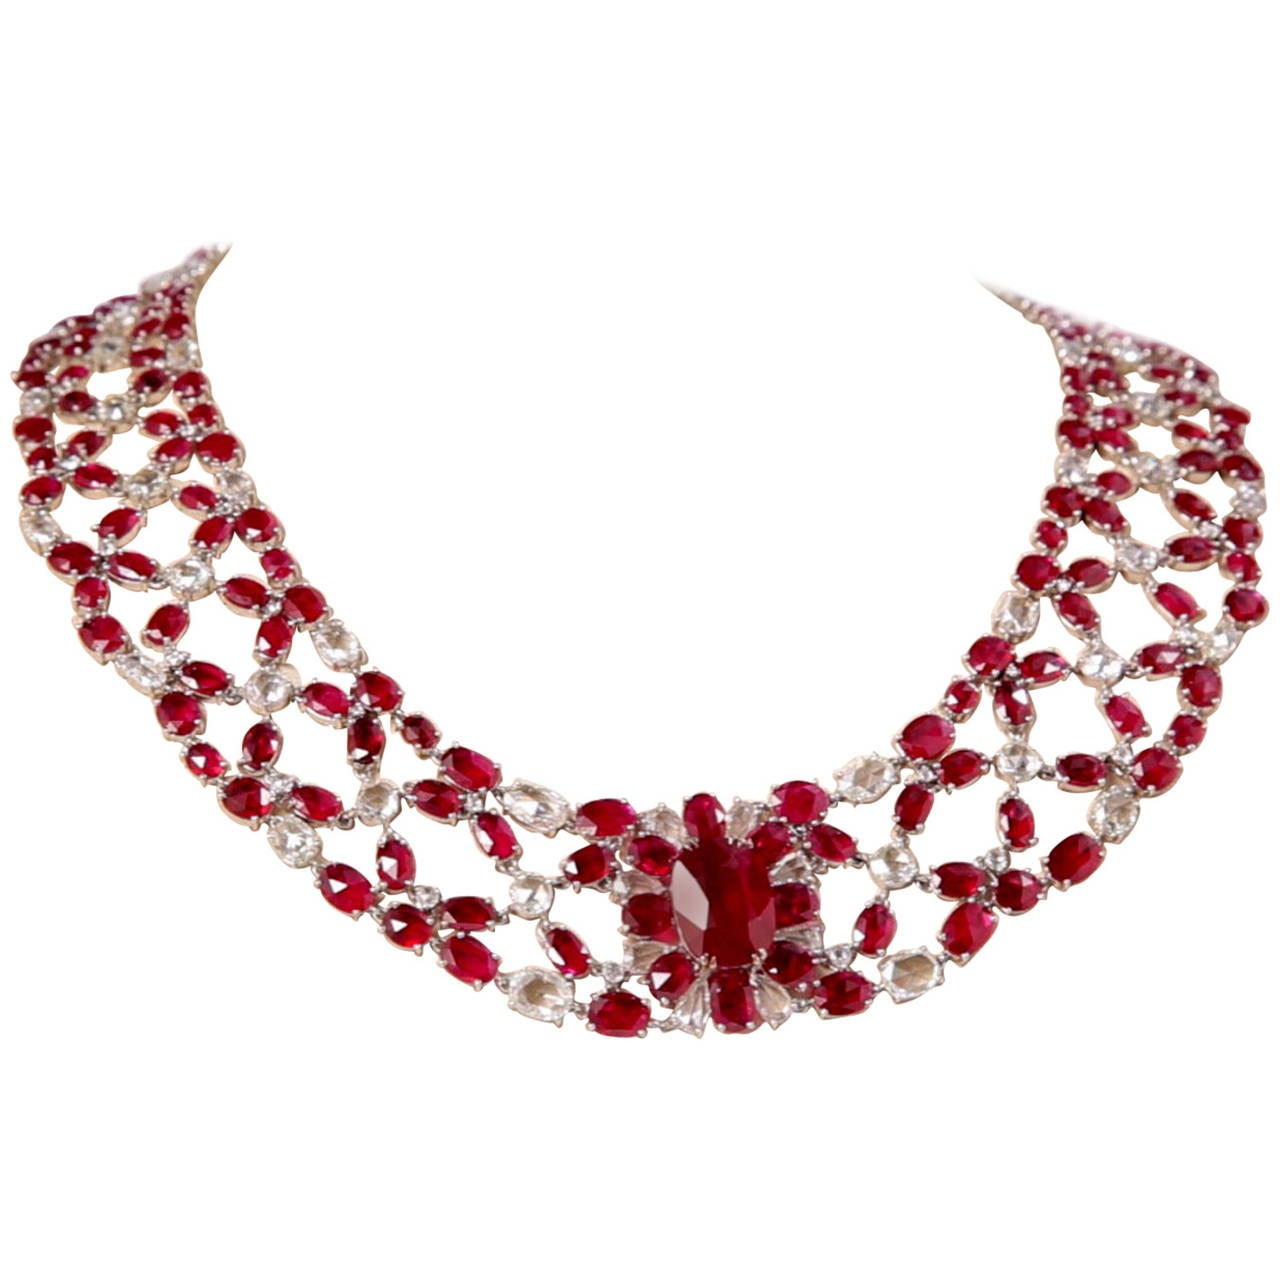 Breathtaking ruby and diamond necklace